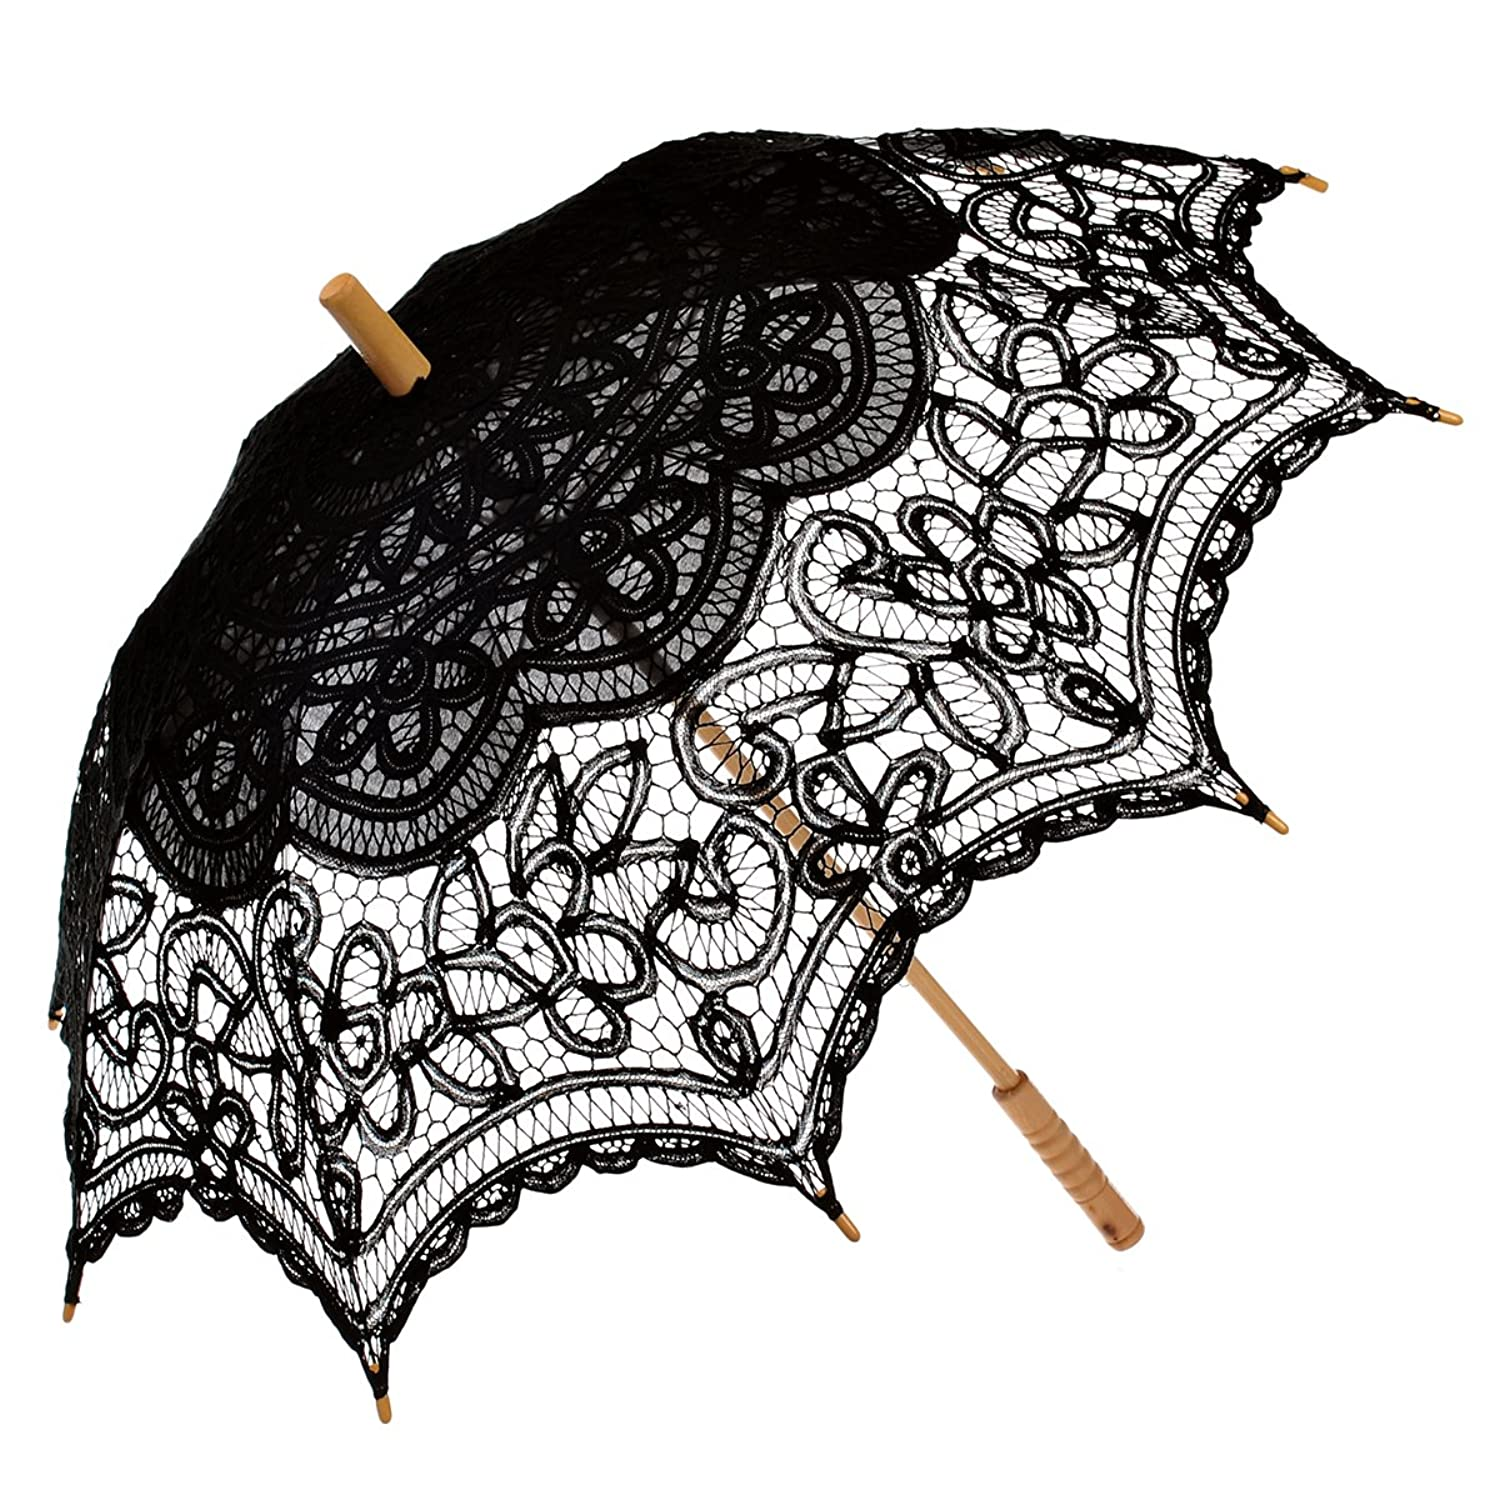 Victorian Parasols, Umbrella | Lace Parosol History  Lace Umbrella Photo Props Decoration                                             $24.99 AT vintagedancer.com